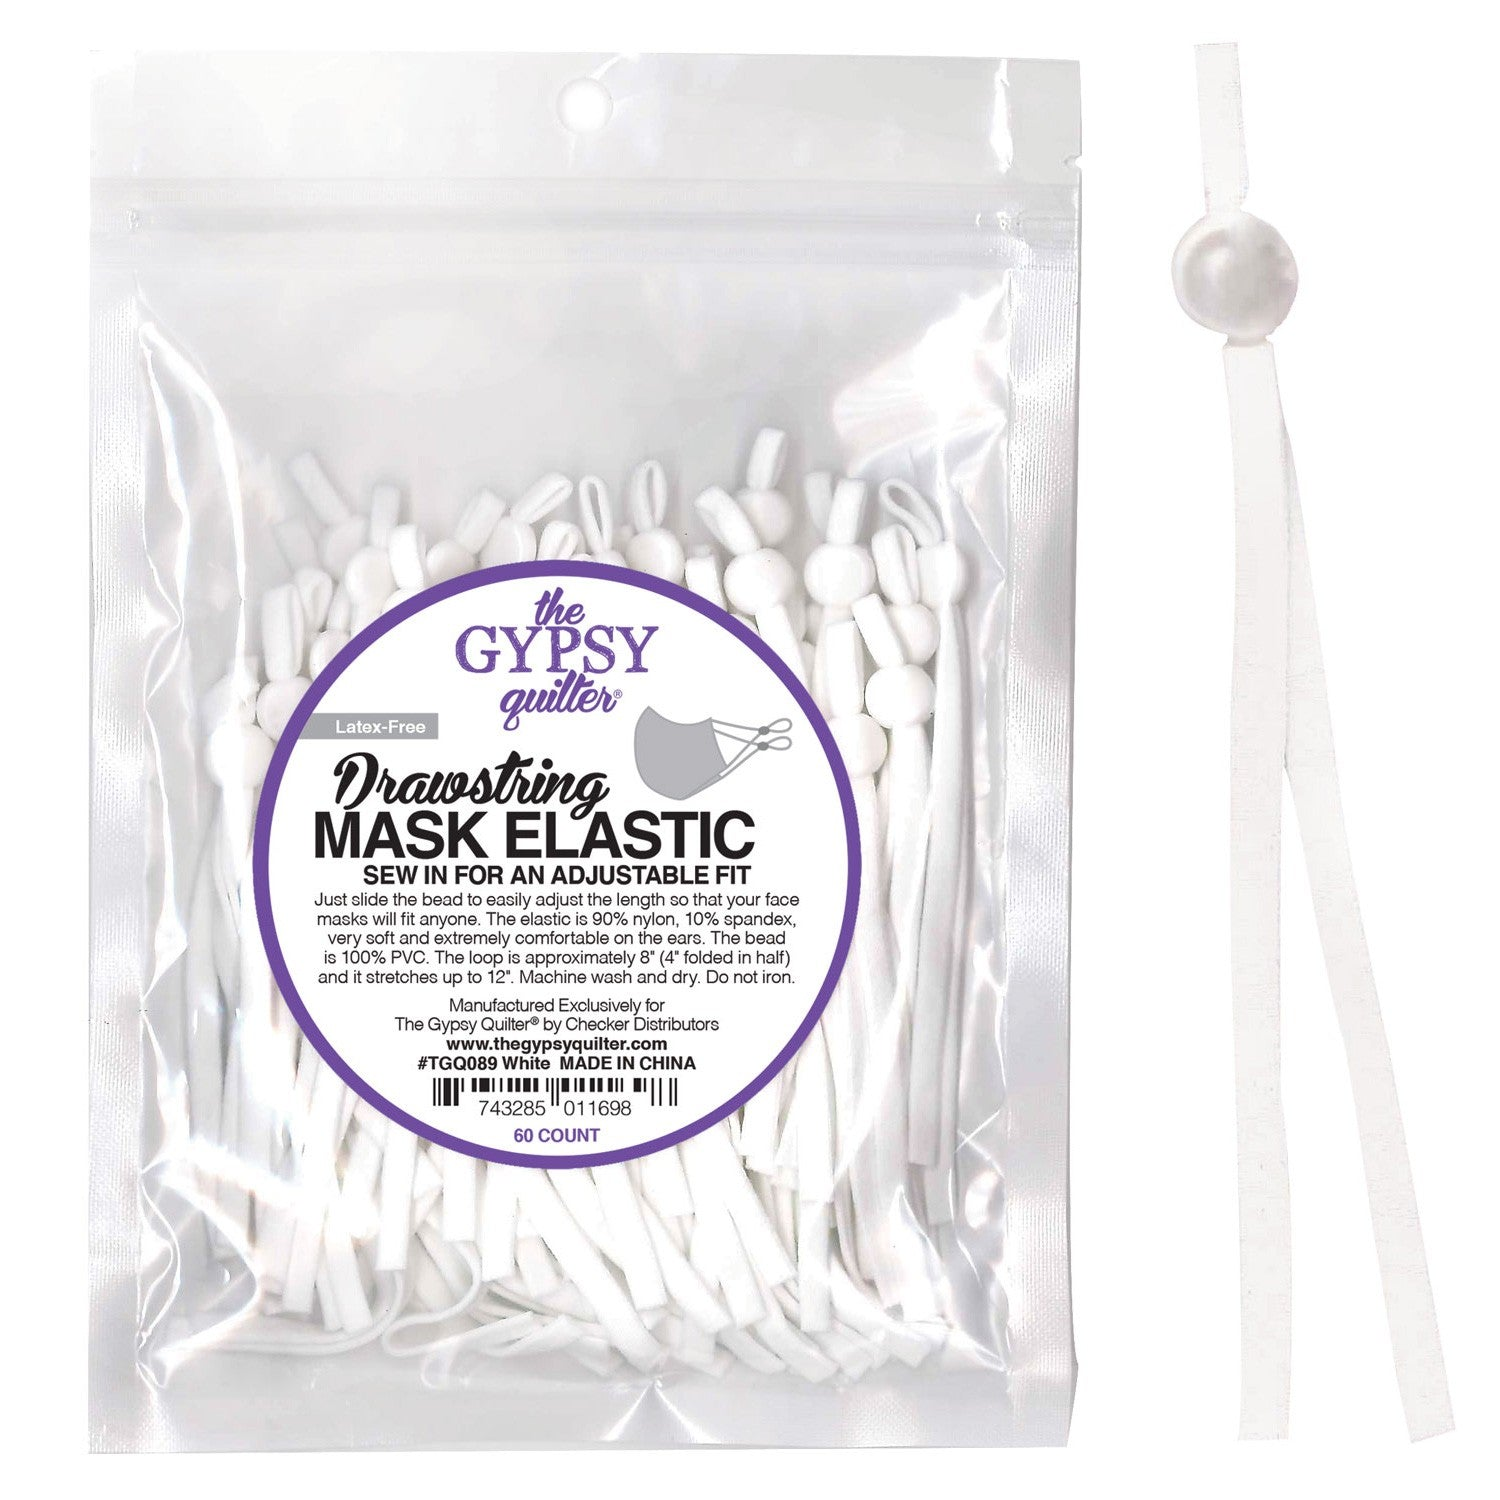 Drawstring Mask Elastic White 60ct